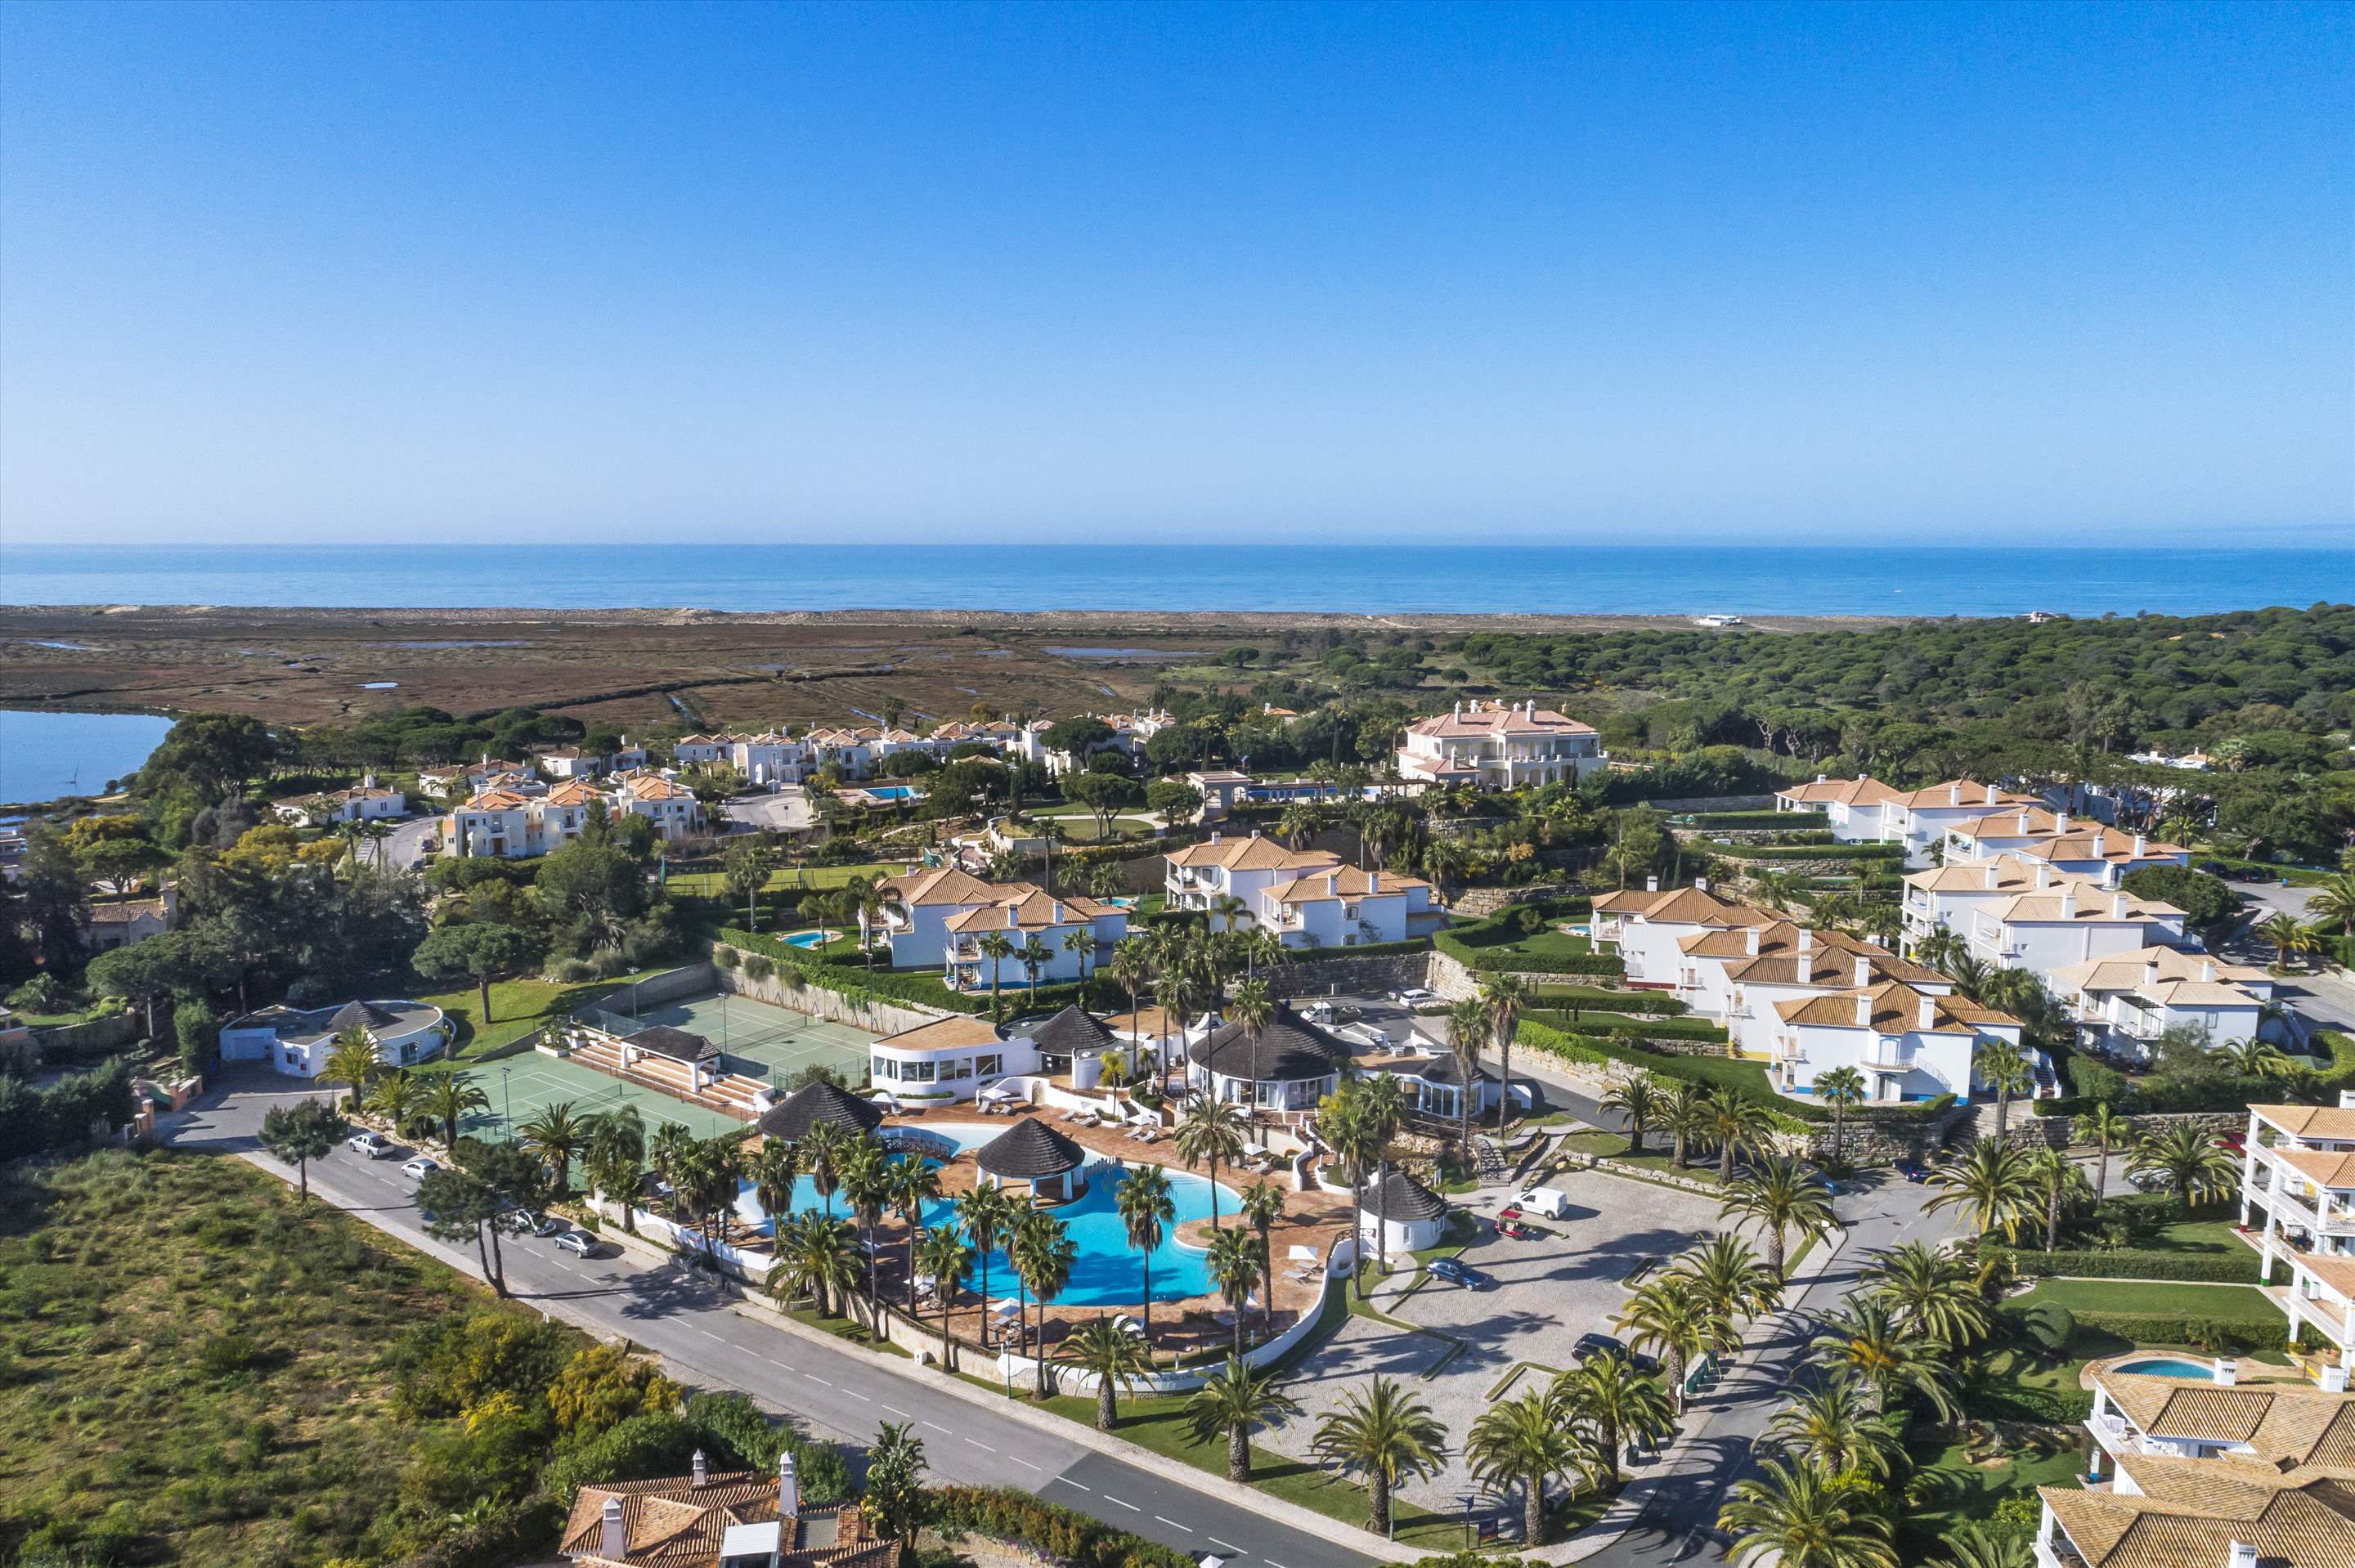 Encosta do Lago 1 Bedroom Apt, Top Floor, 1 bedroom apartment in Encosta do Lago Resort, Algarve Photo #25